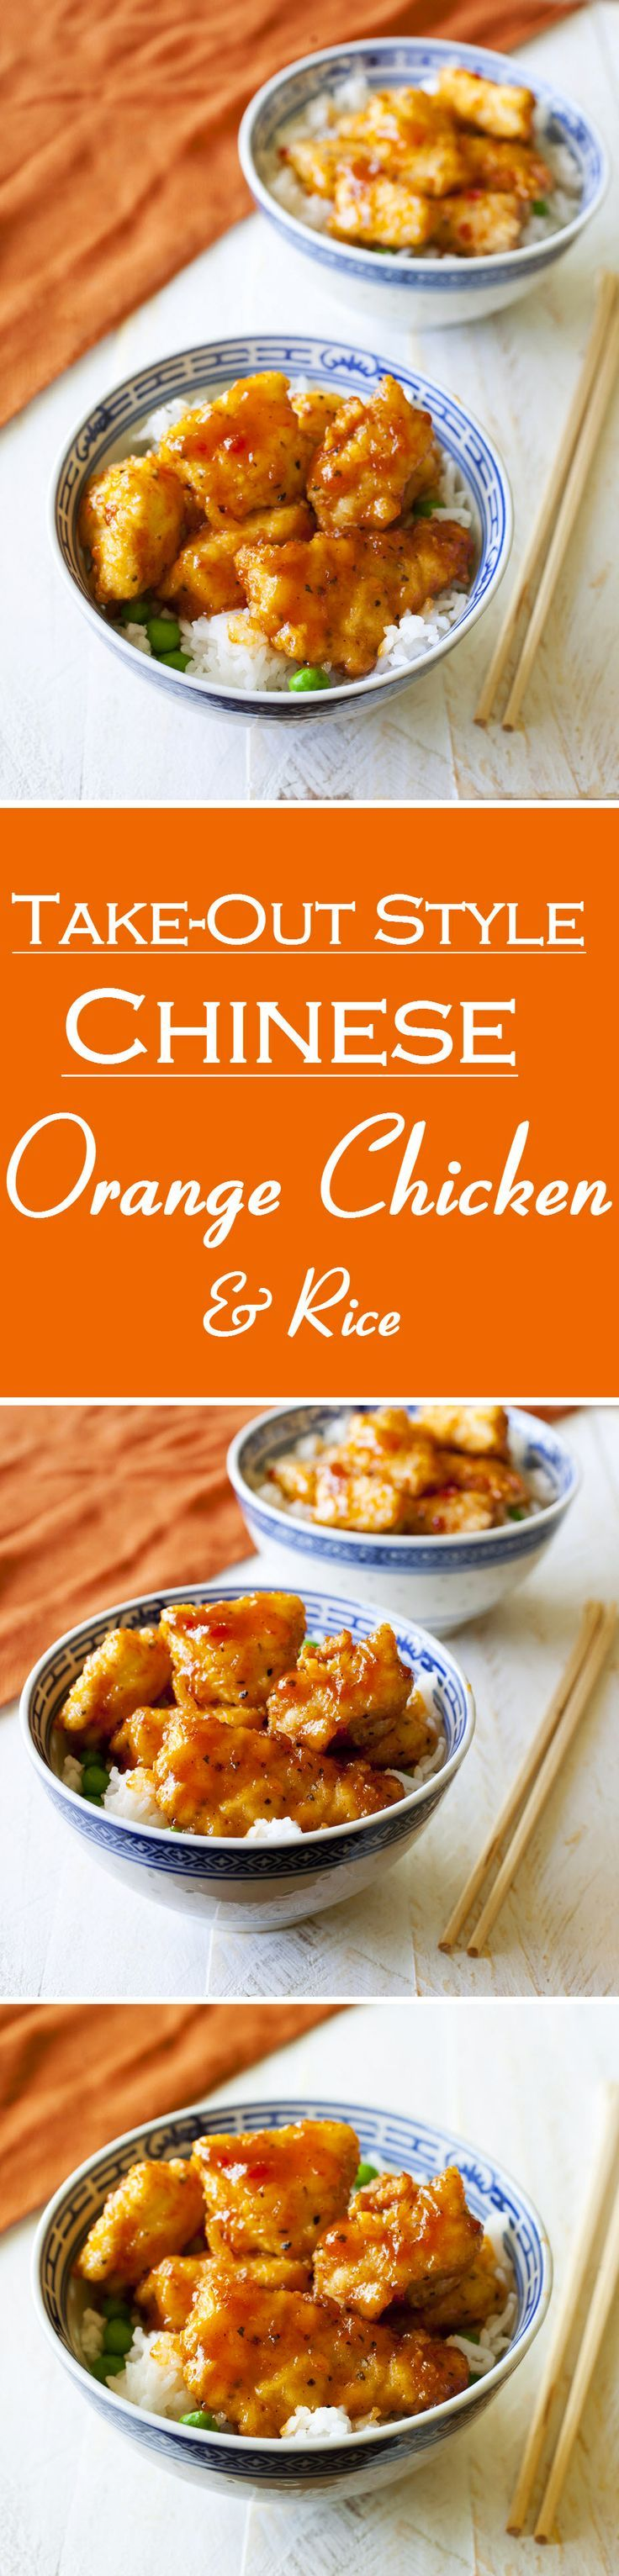 Take-Out Style Chinese Orange Chicken & Rice #recipe #food #chinese #takeout #chicken #rice